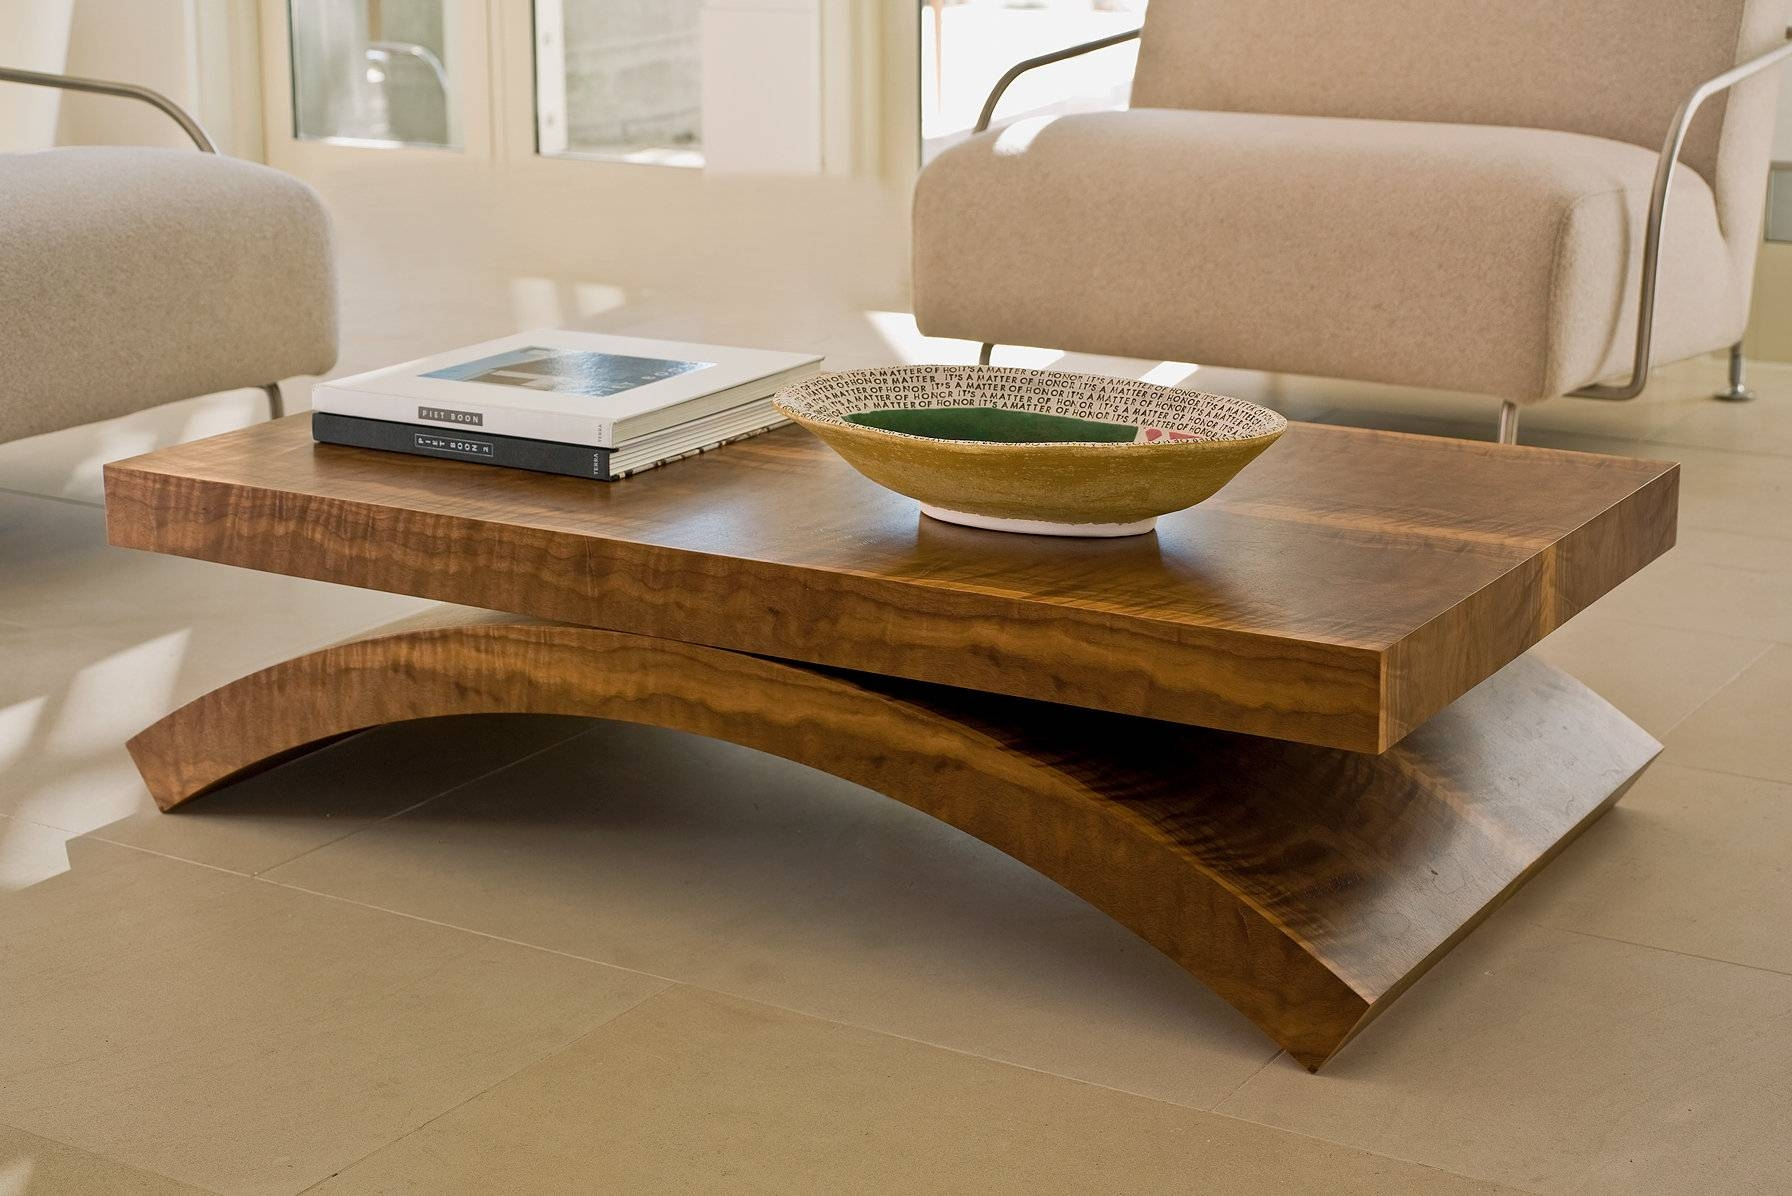 Cheap Coffee Tables Uk. Folding Beds Coffee Tables And Fold Out with regard to Cheap Oak Coffee Tables (Image 3 of 30)